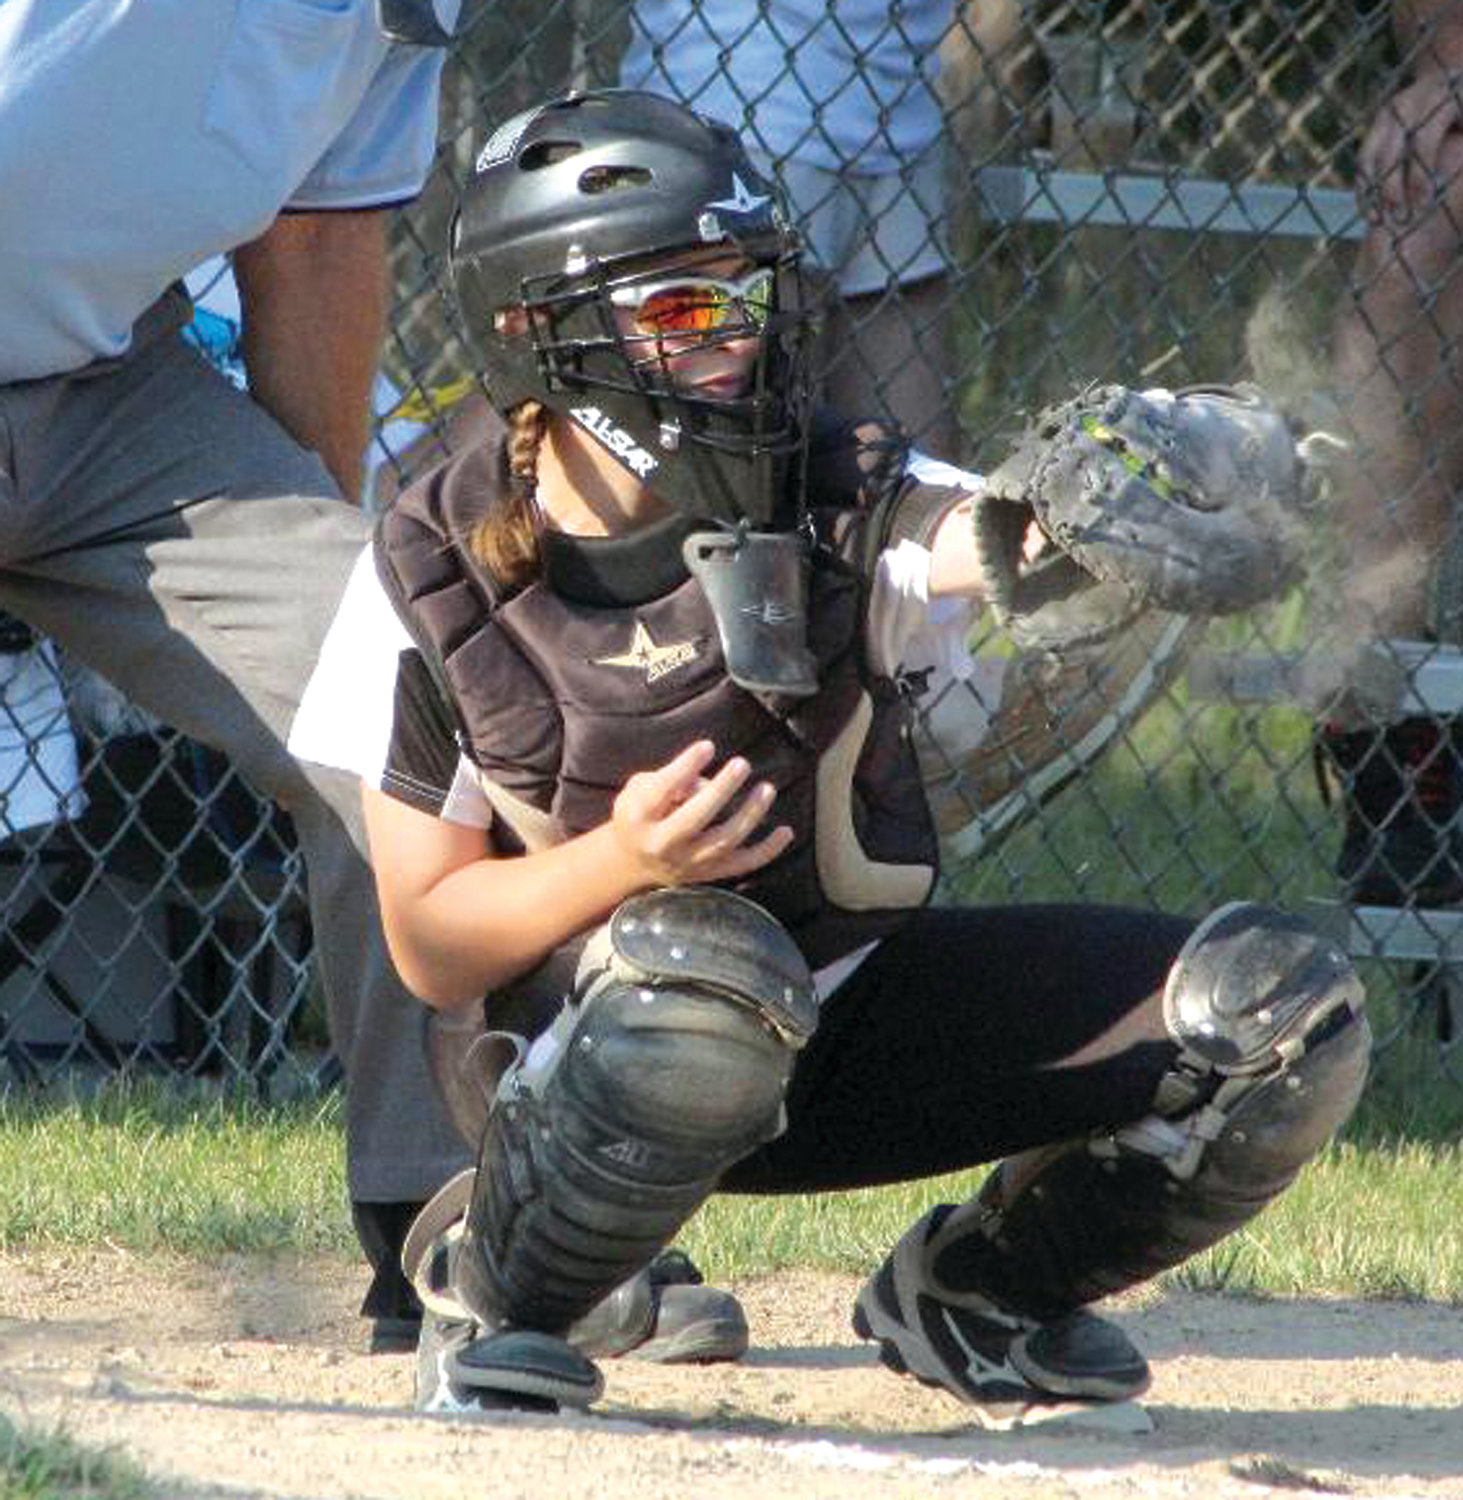 DOING BATTLE: Warwick North catcher Genna D'Amato works behind the plate against East Greenwich in the District 3 Championship last week at Bend Street.